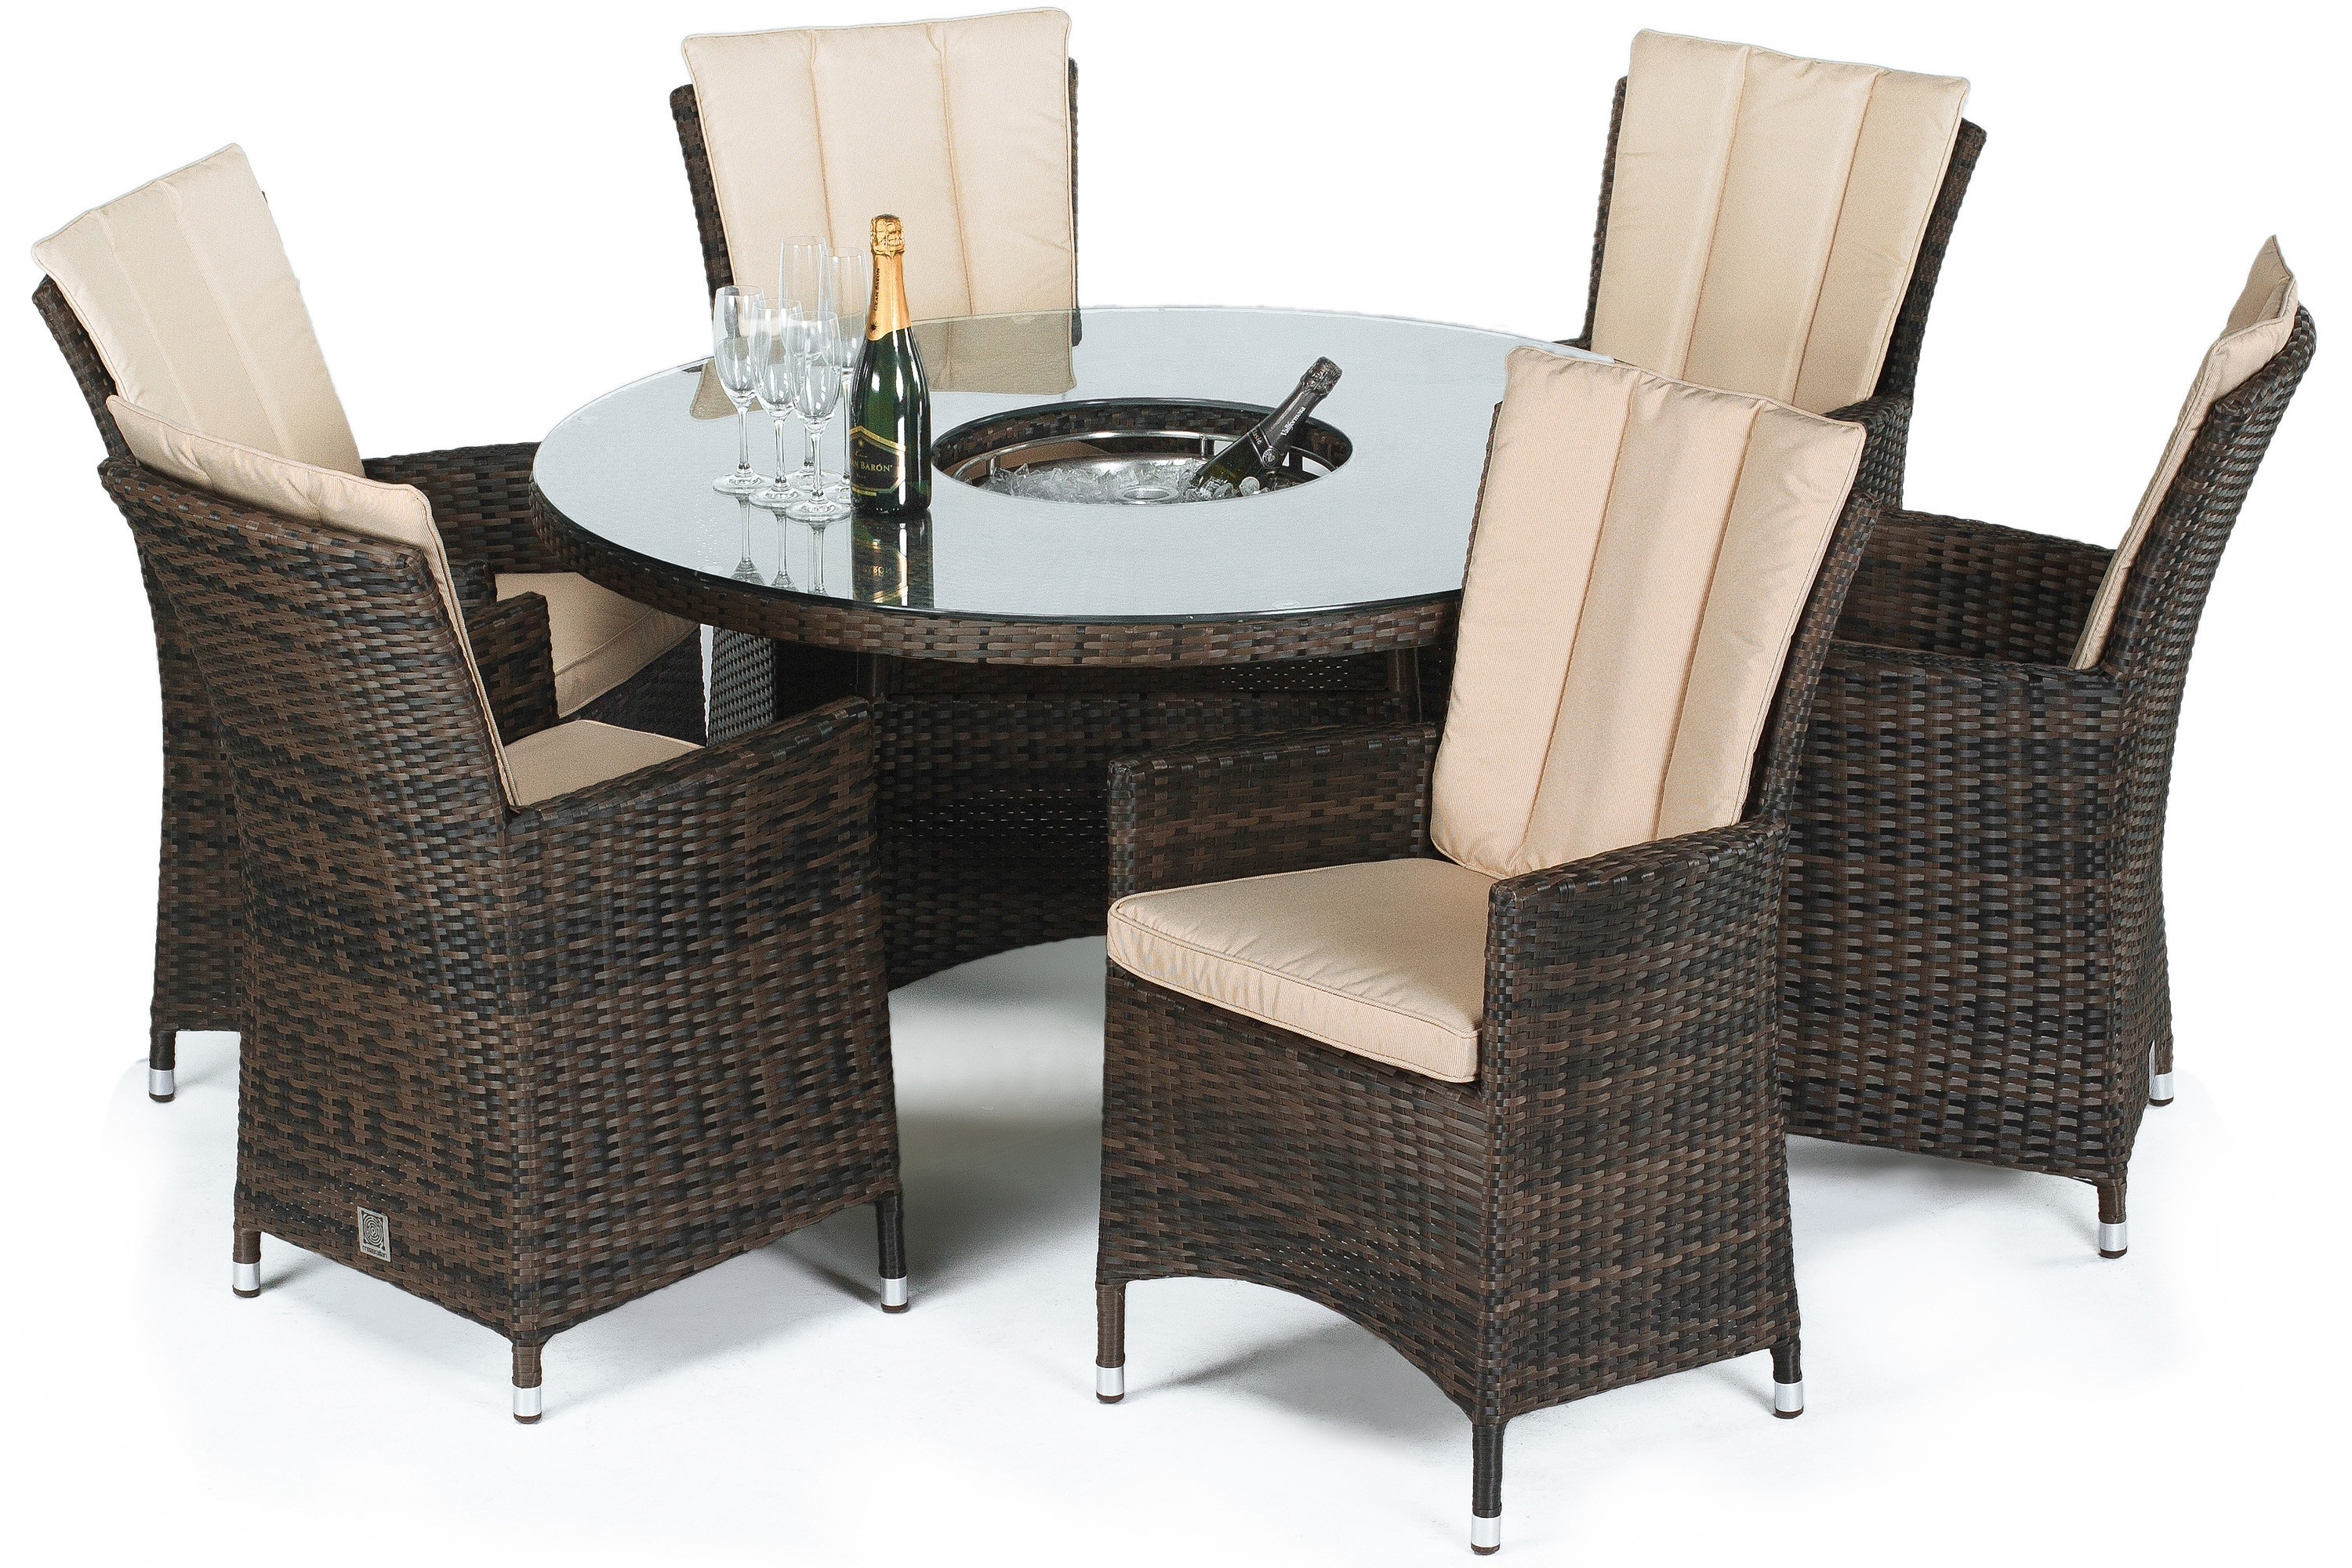 Maze Rattan La 6 Seat Round Dining Set With Or Without Ice